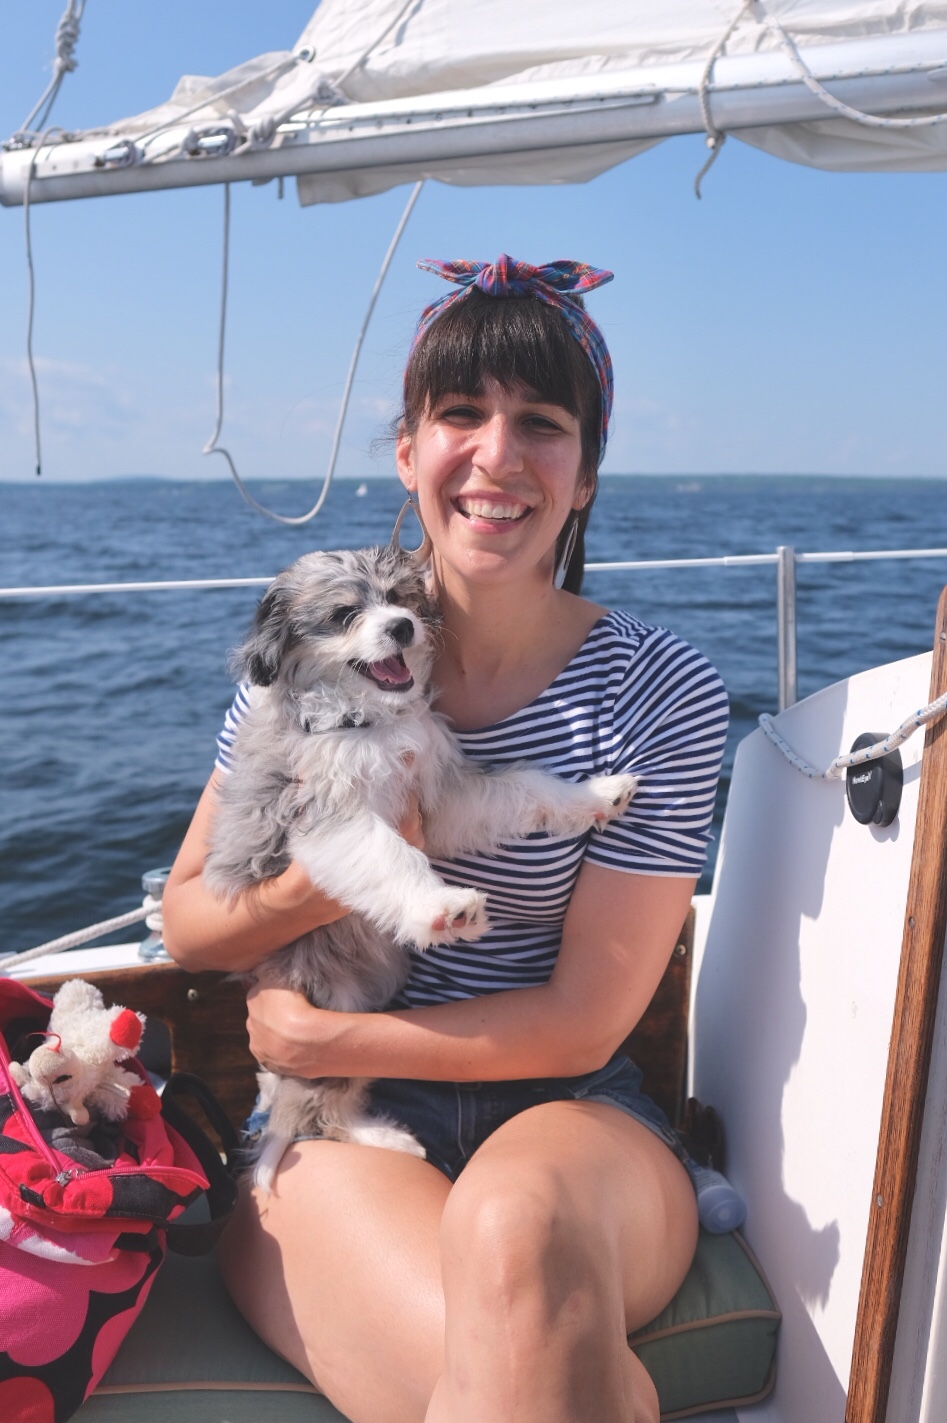 Smiling woman on a sailboat wearing headband with smiling AussieDoodle puppy.